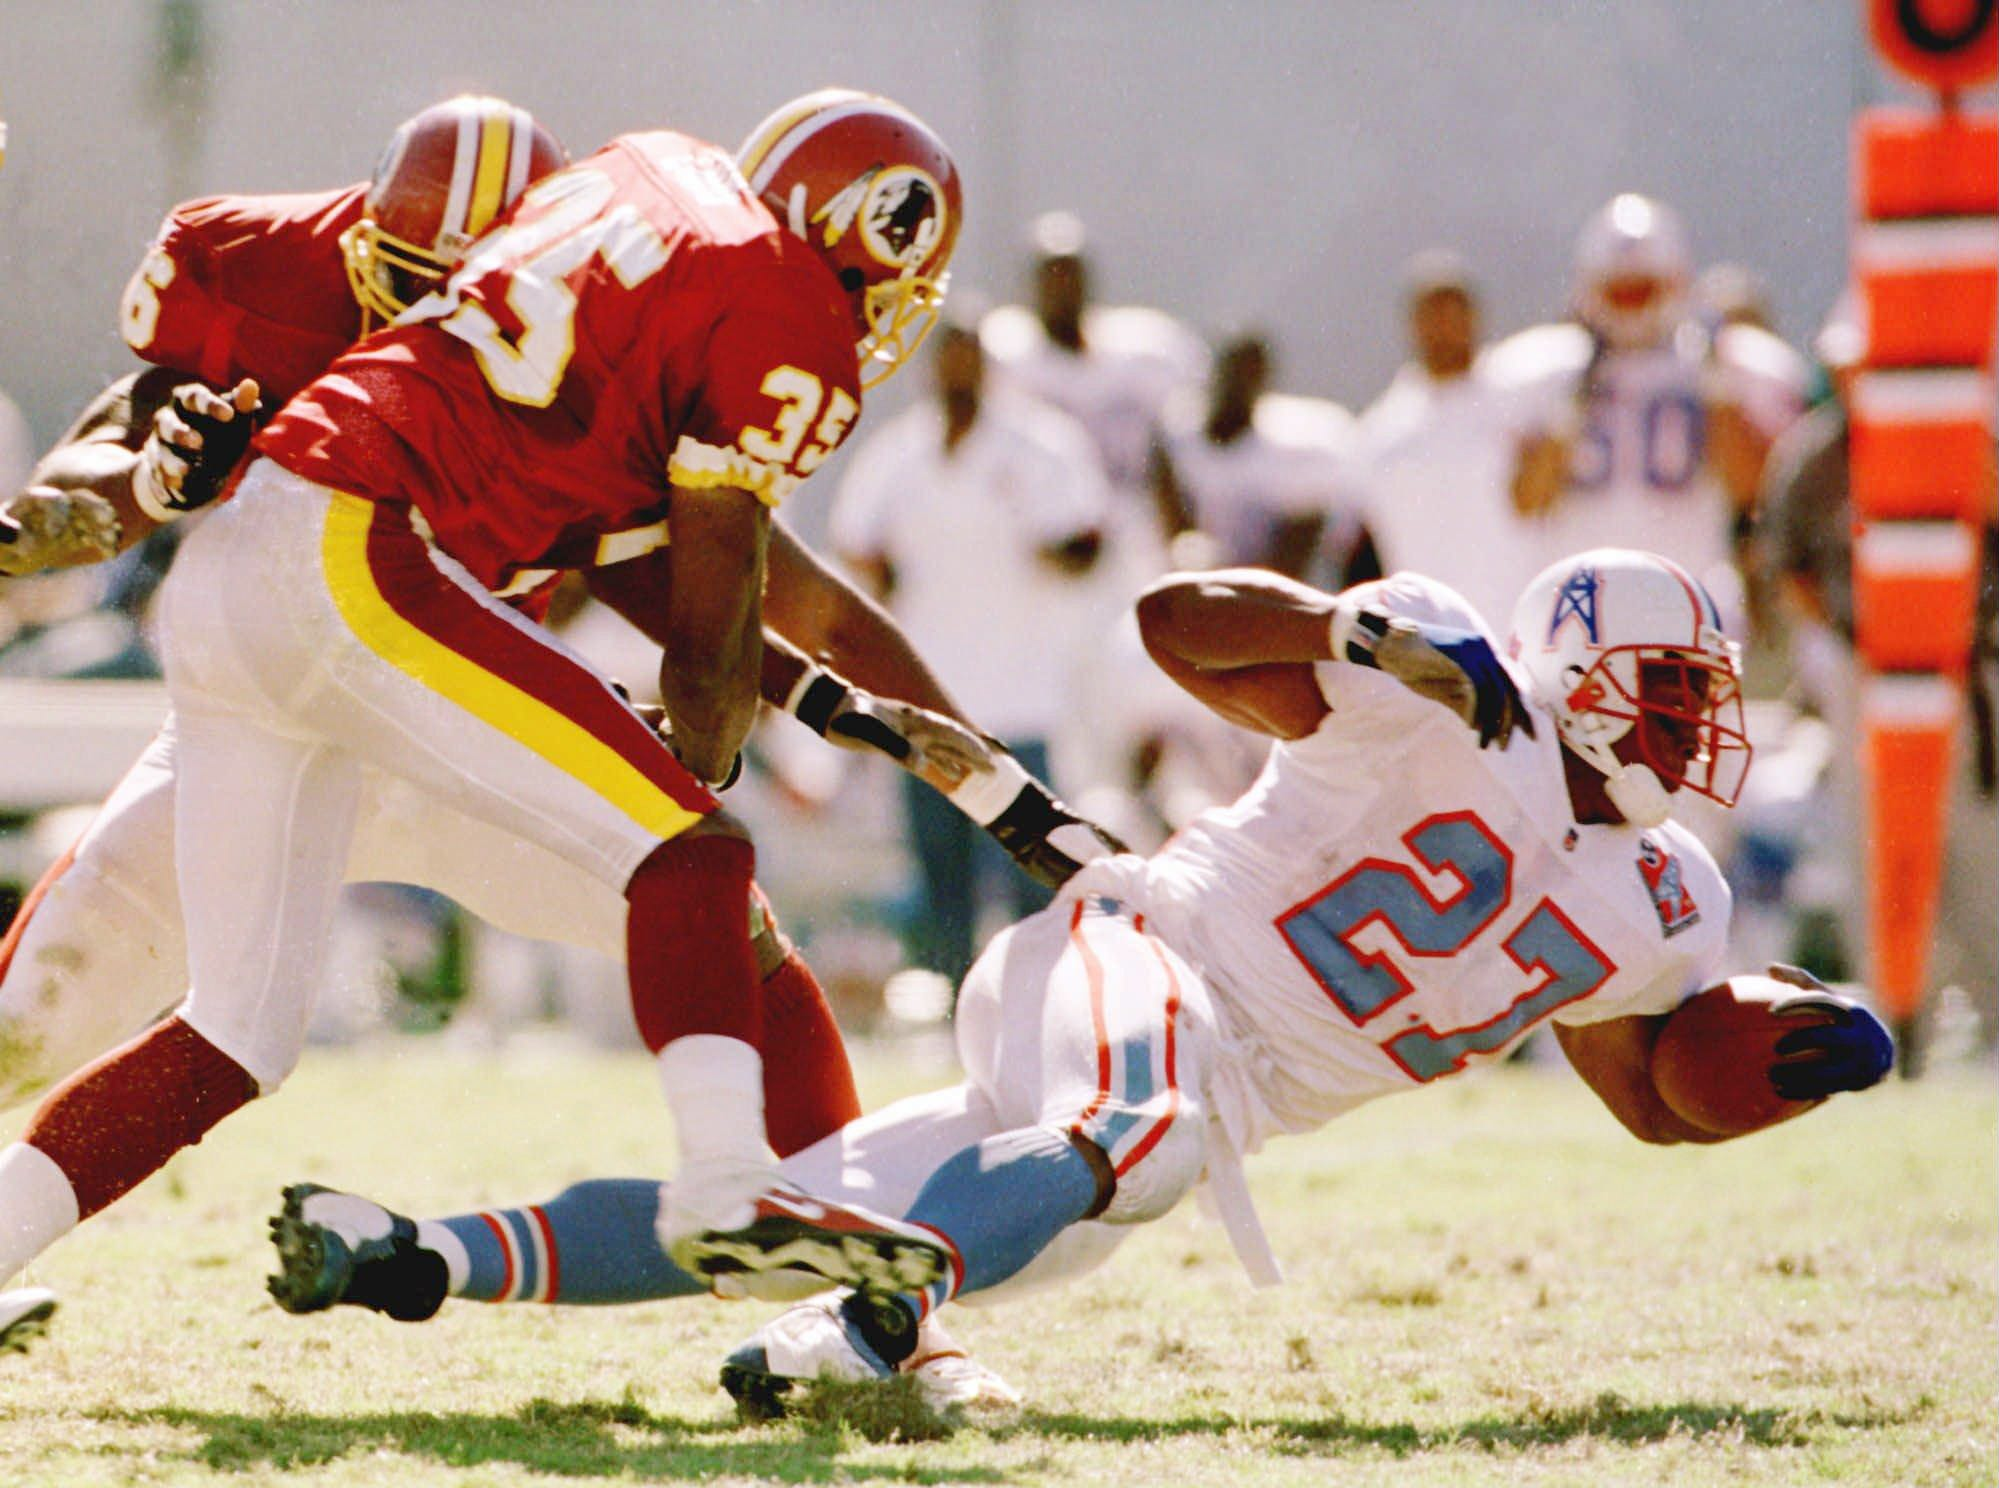 Tennessee Oilers running back Eddie George (27) stretches for a few extra yards as he is brought down by Washington Redskins Leomont Evans (35) during Tennessee's 28-14 win Oct. 19, 1997 in Memphis. George rushed for 125 yards and two touchdowns.